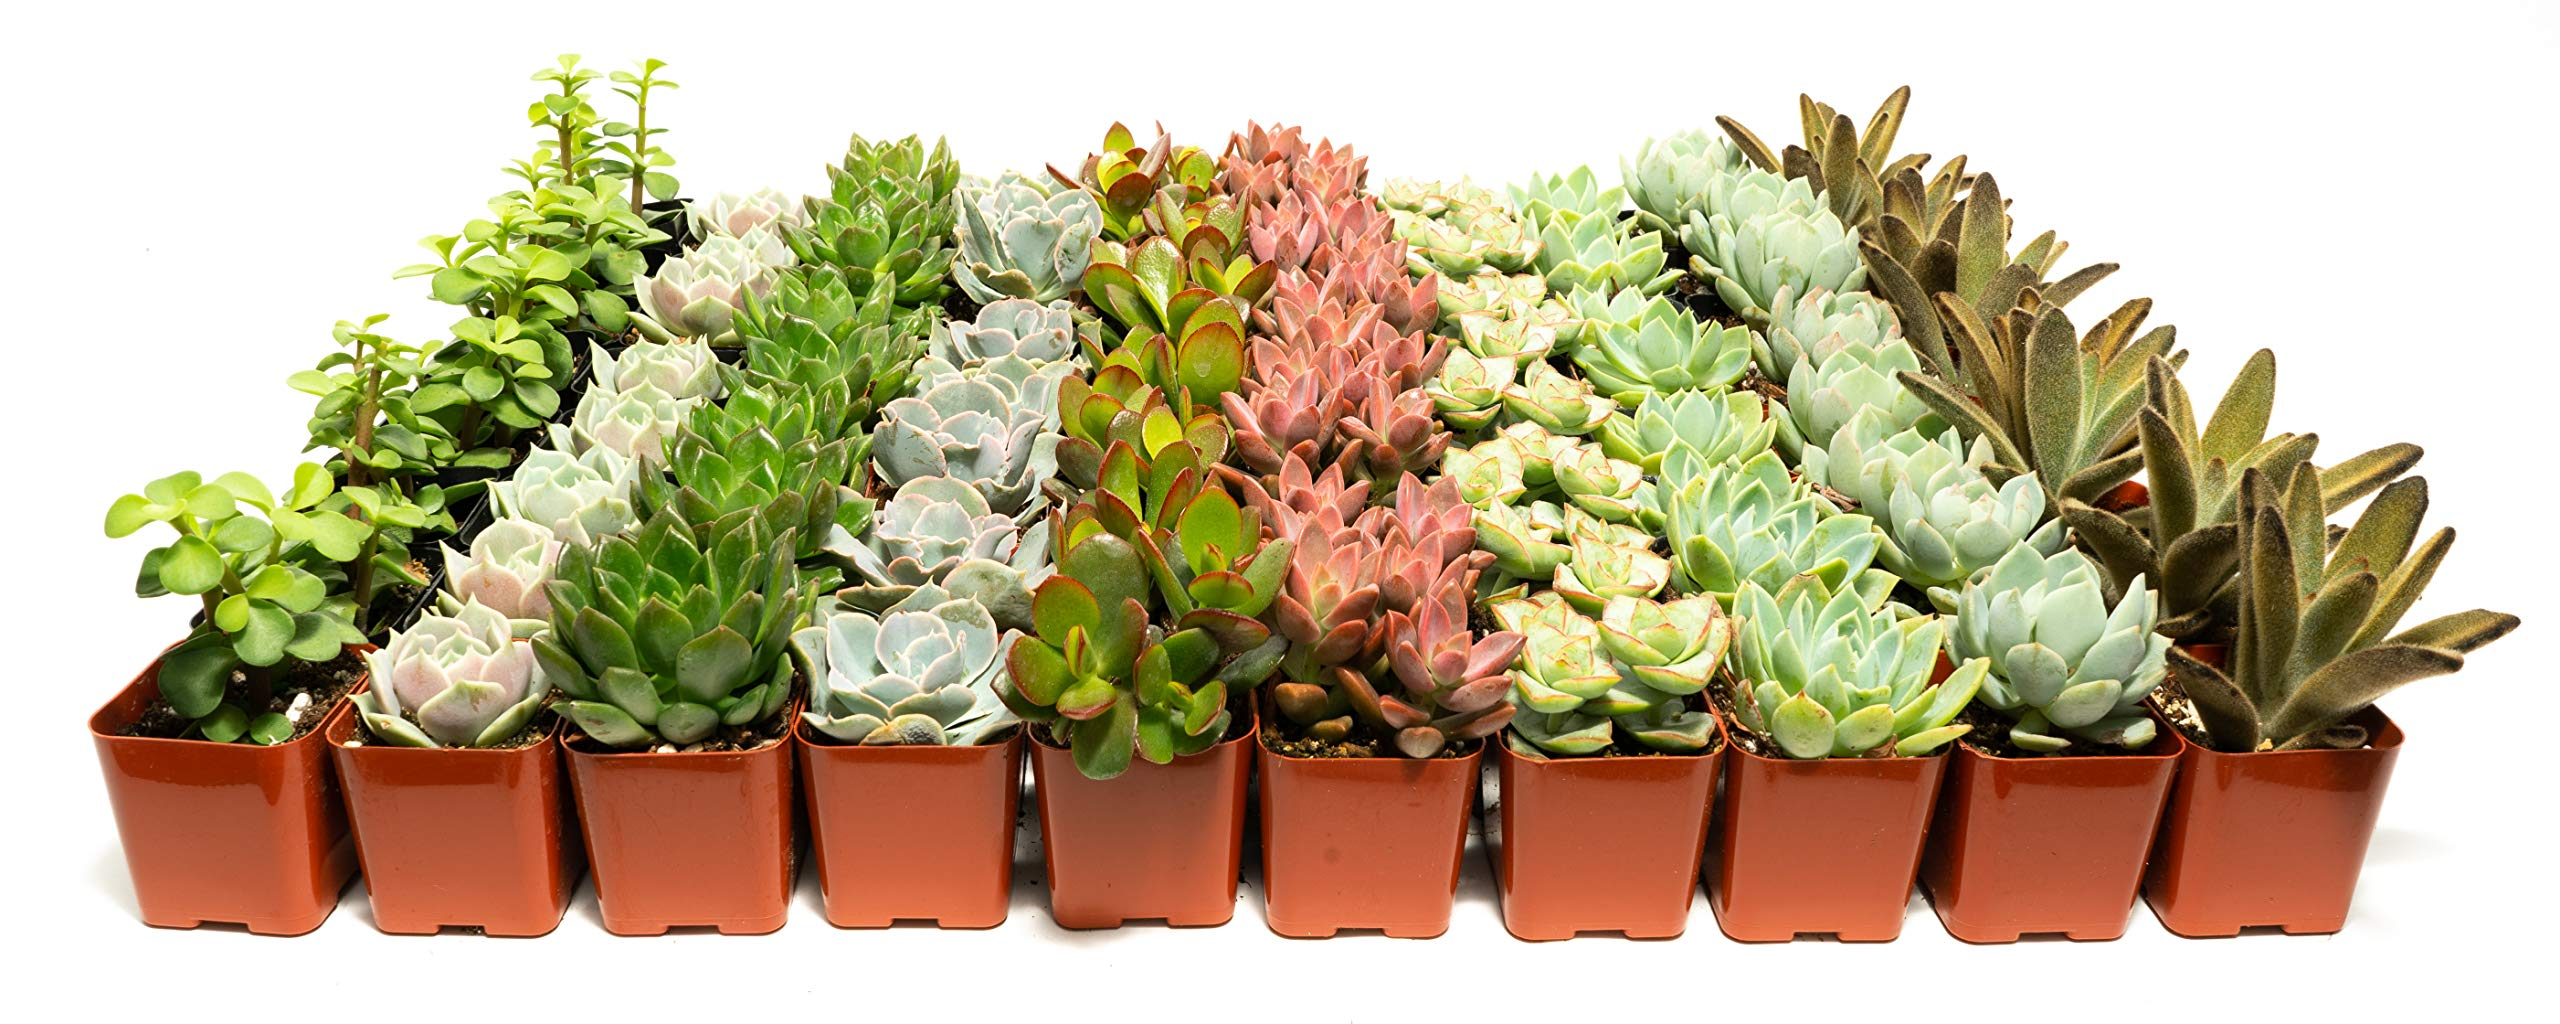 Succulent Assorted Pack- Perfect for Weddings, Party Favors, Home Gardens, and Social Events by Jiimz (80 Pack) by jiimz (Image #1)